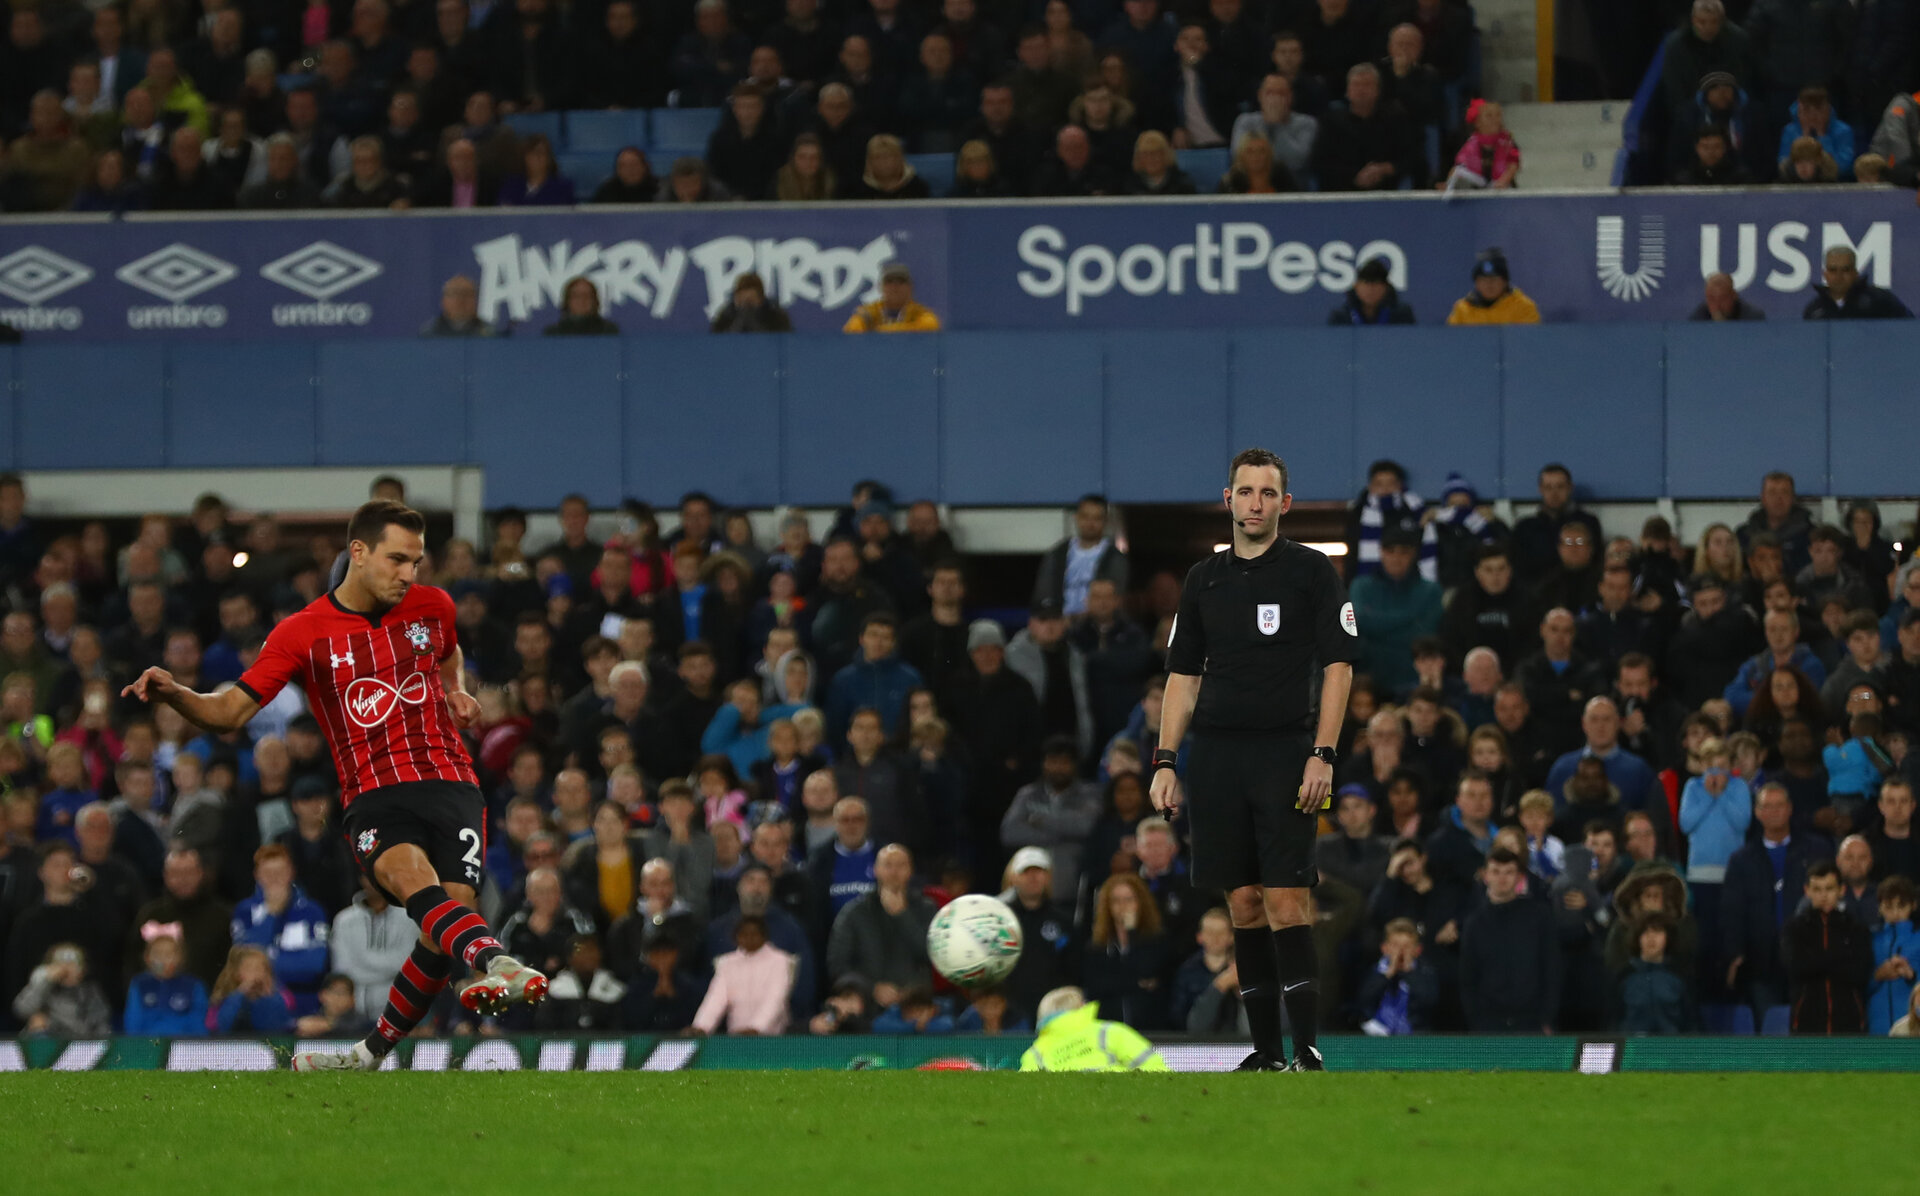 LIVERPOOL, ENGLAND - OCTOBER 02: Cedric of Southampton scores the winning penalty during the Carabao Cup Third Round match between Everton and Southampton at Goodison Park on October 2nd, 2018 in Liverpool, England. (Photo by Matt Watson/Southampton FC via Getty Images)